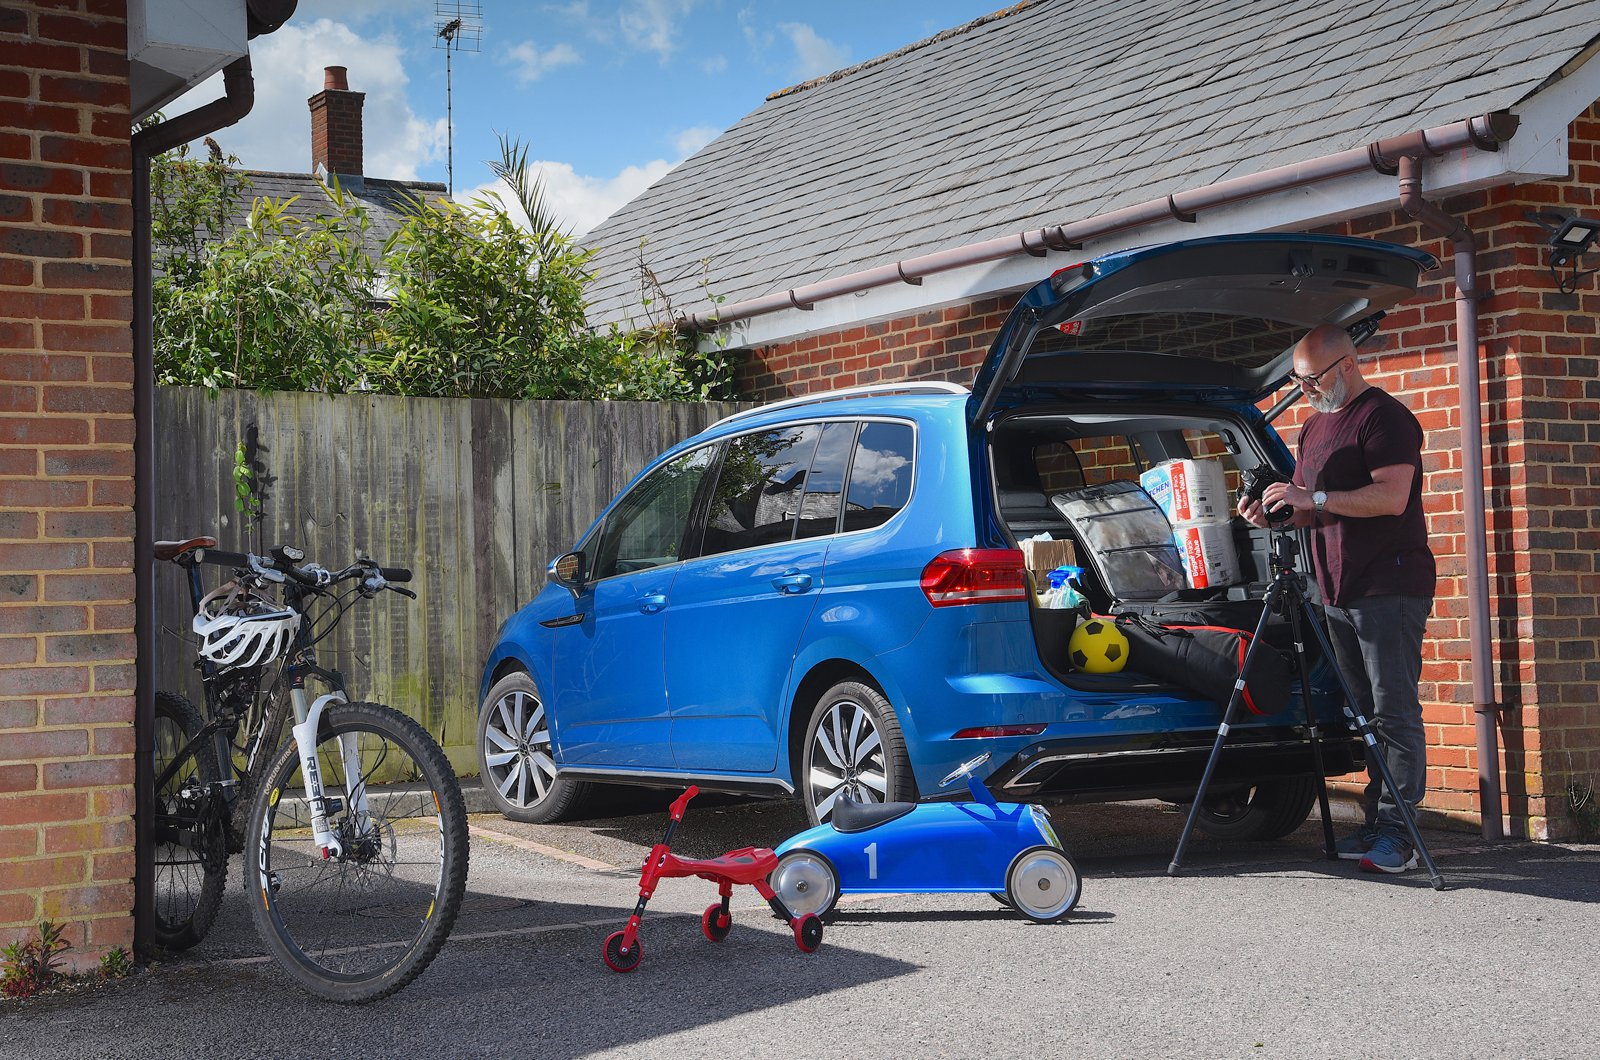 LT Volkswagen Touran with stuff you can fit in its boot